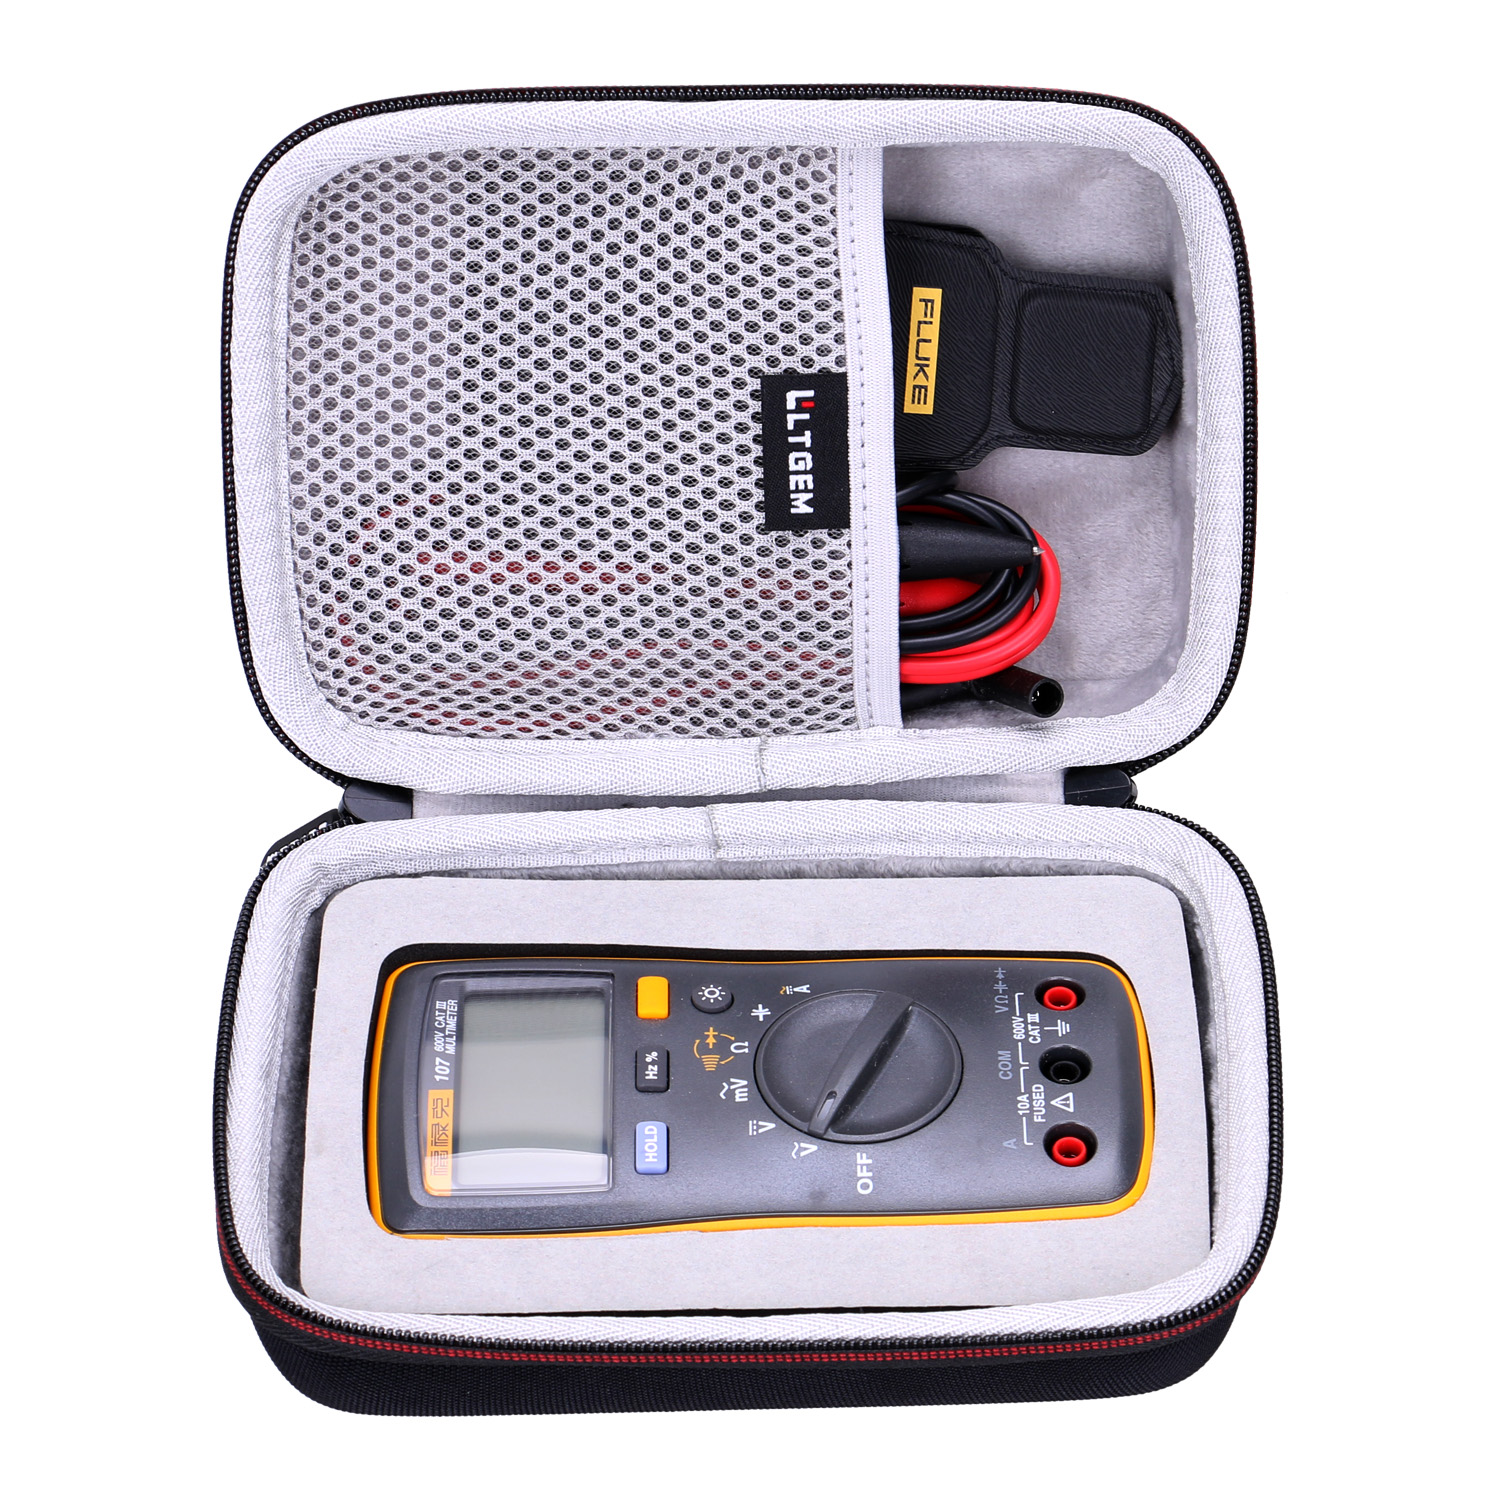 LTGEM EVA Waterproof Carrying Hard Case For Fluke 107 AC/dc Current Hand Held Digital Multimeter